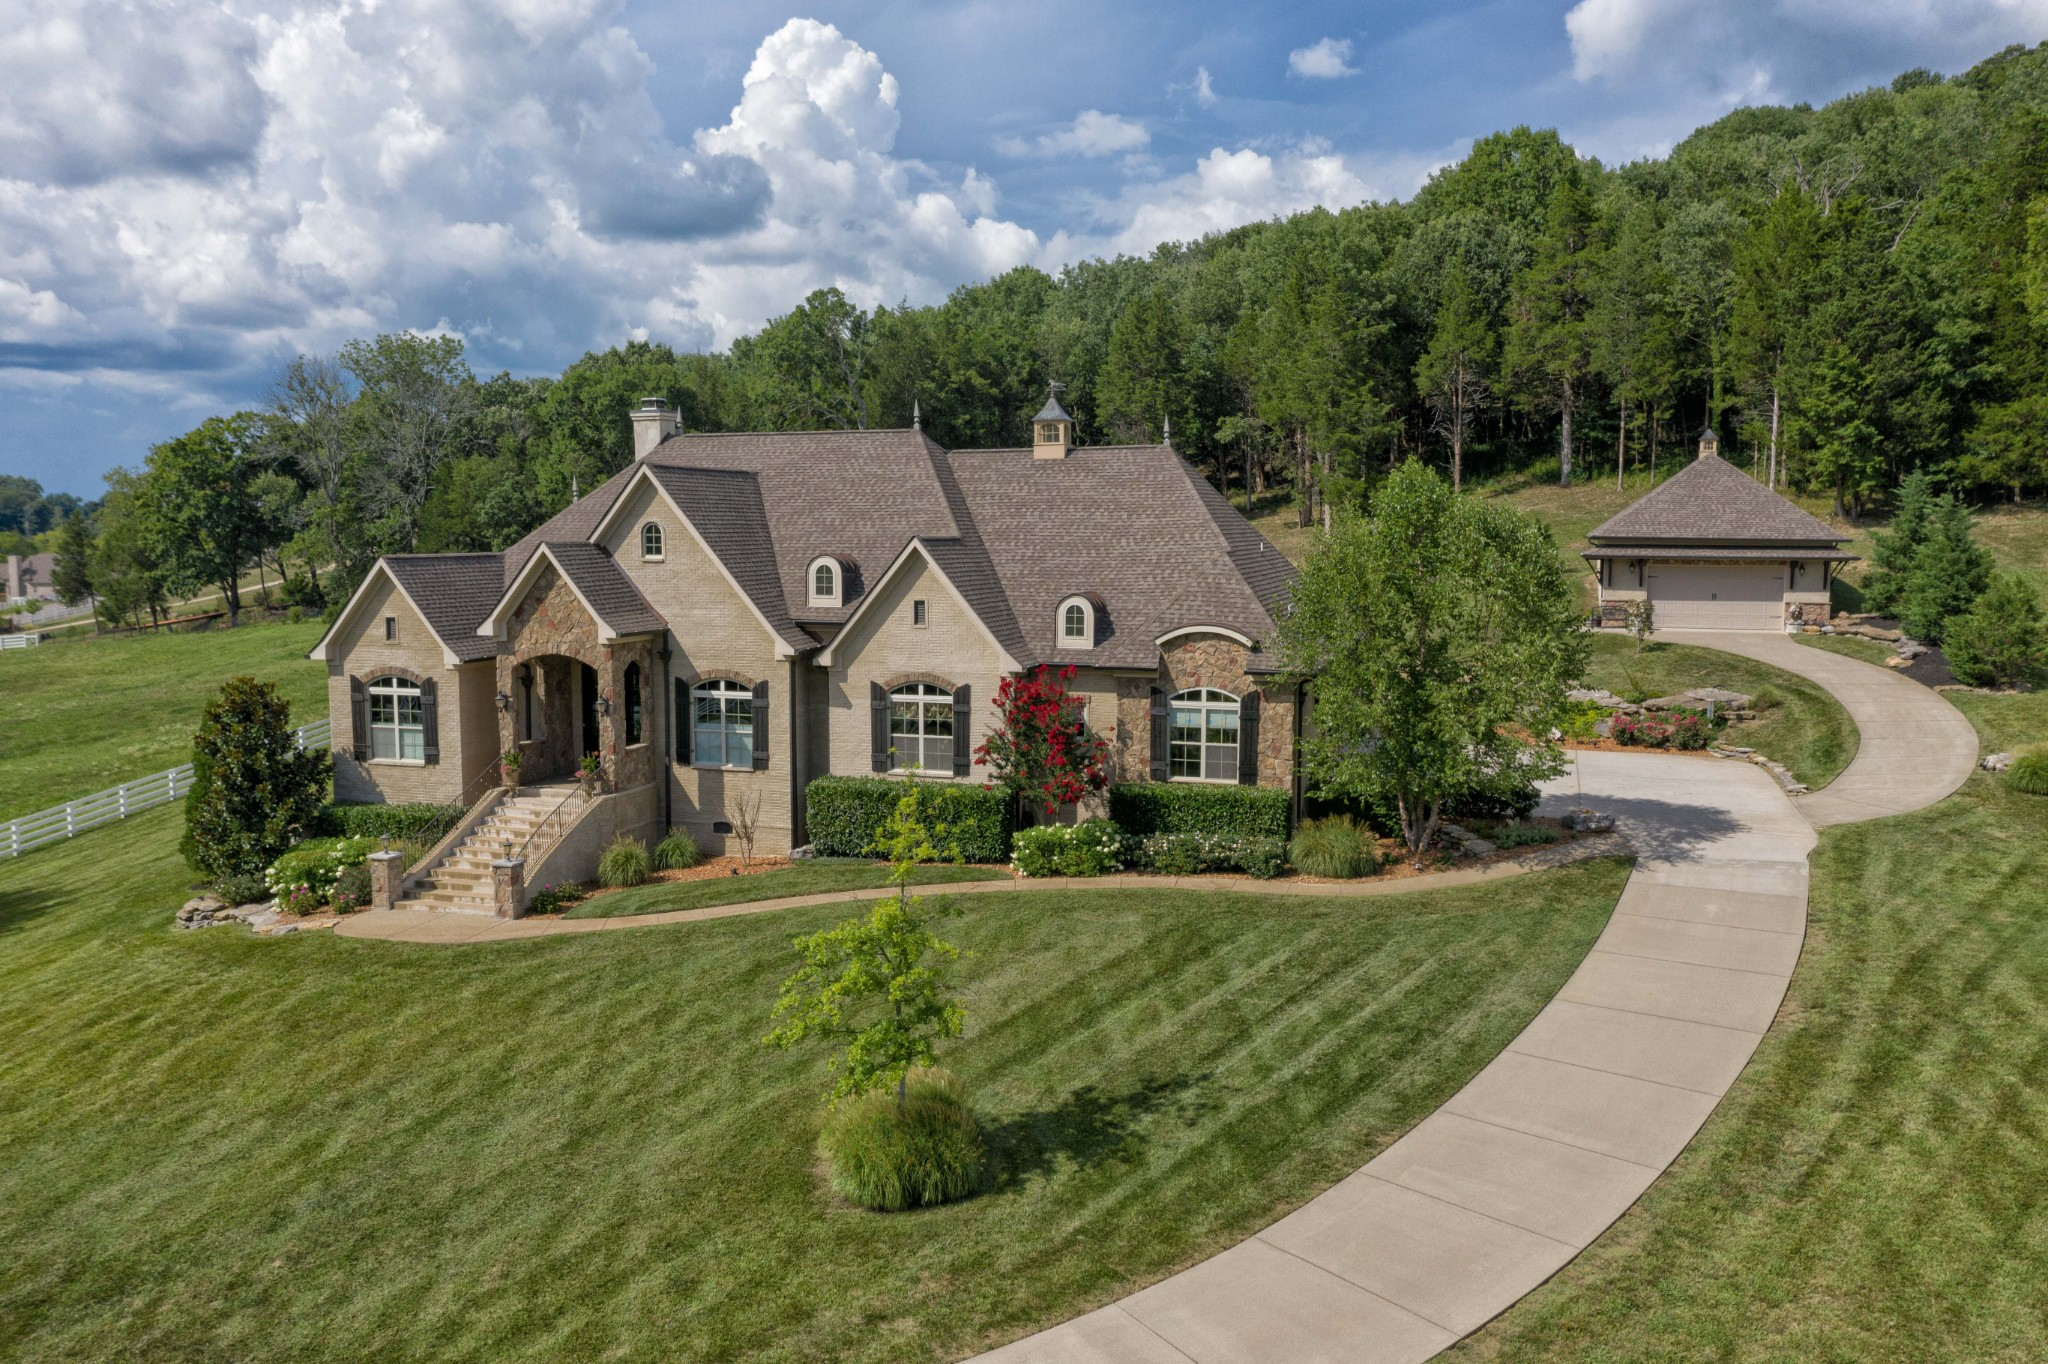 7409 Magnolia Valley Dr Property Photo - Eagleville, TN real estate listing